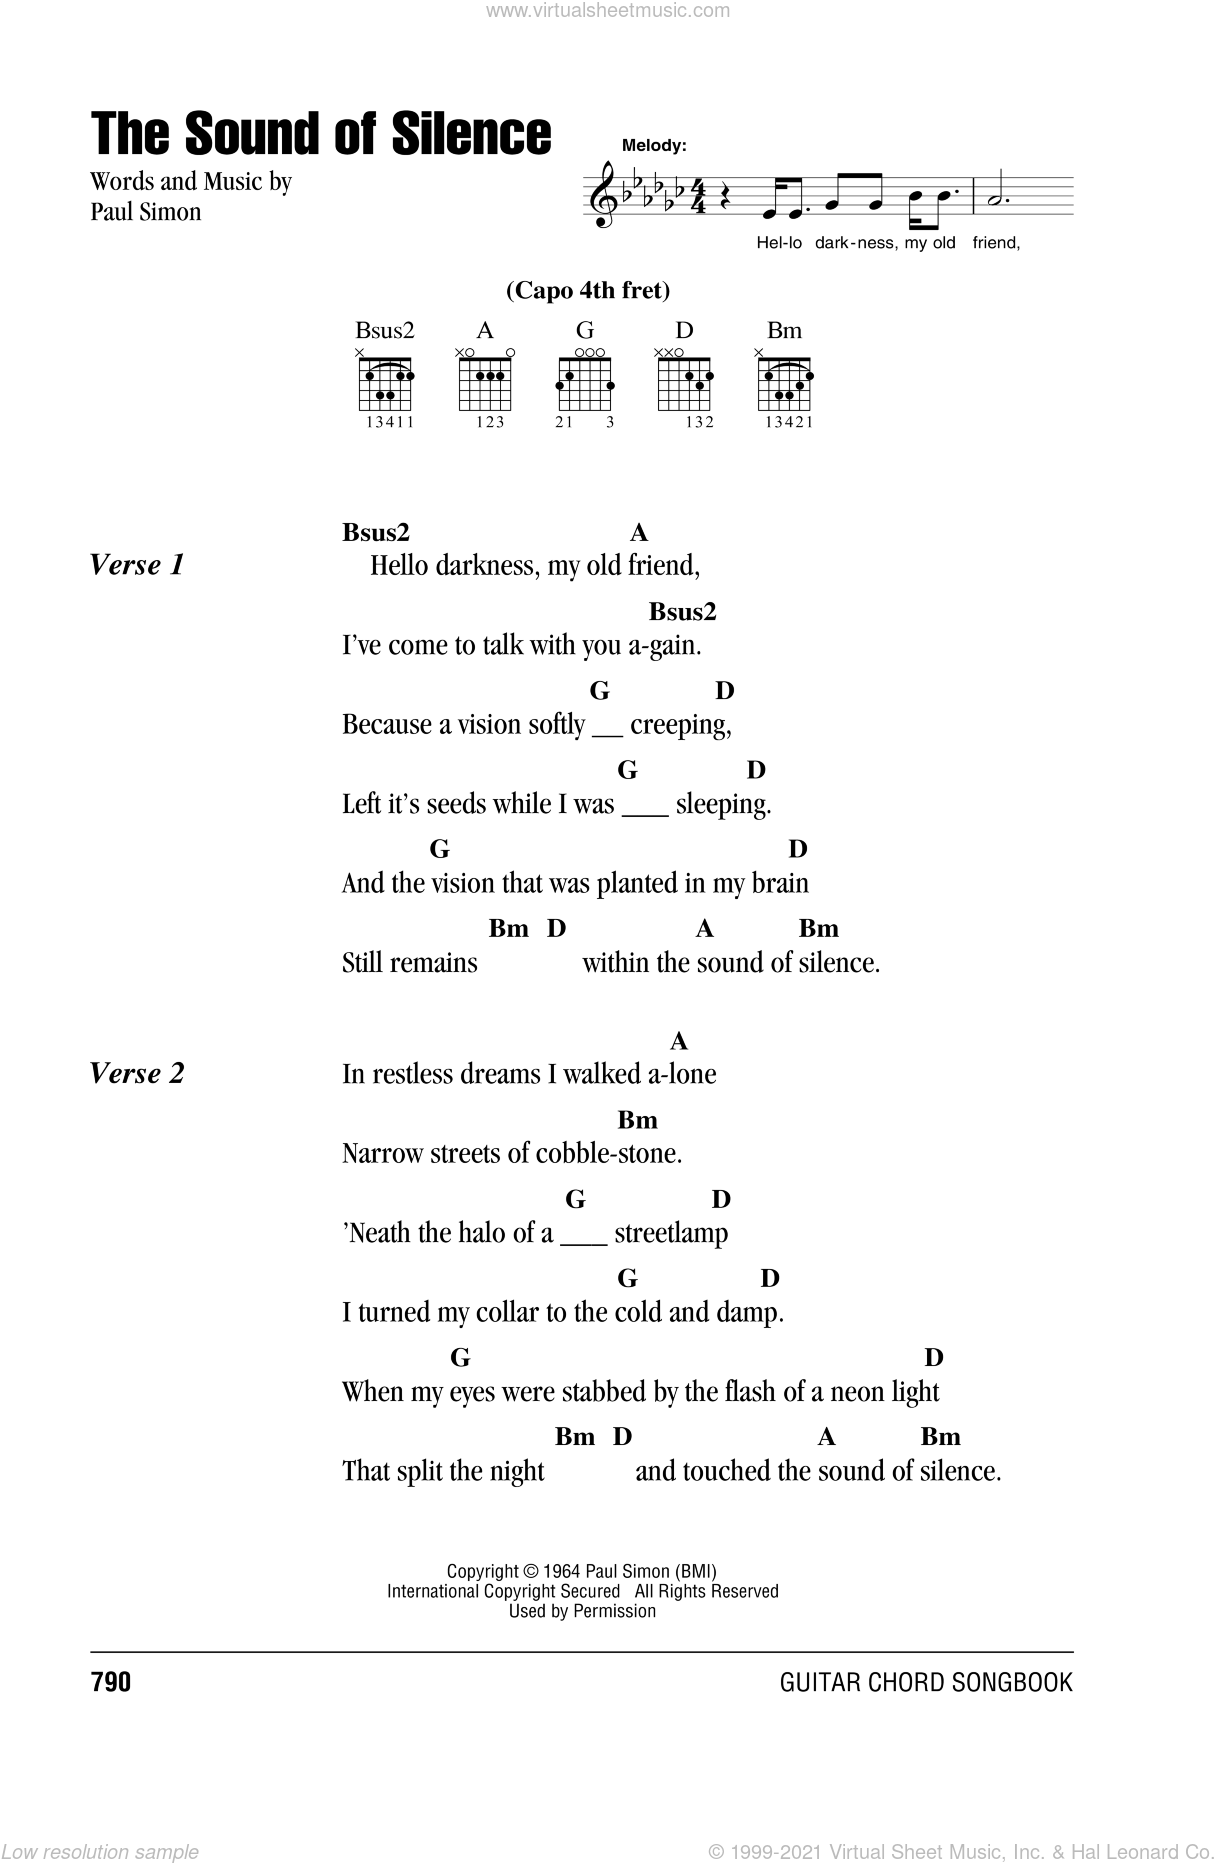 Garfunkel - The Sound Of Silence sheet music for guitar (chords)